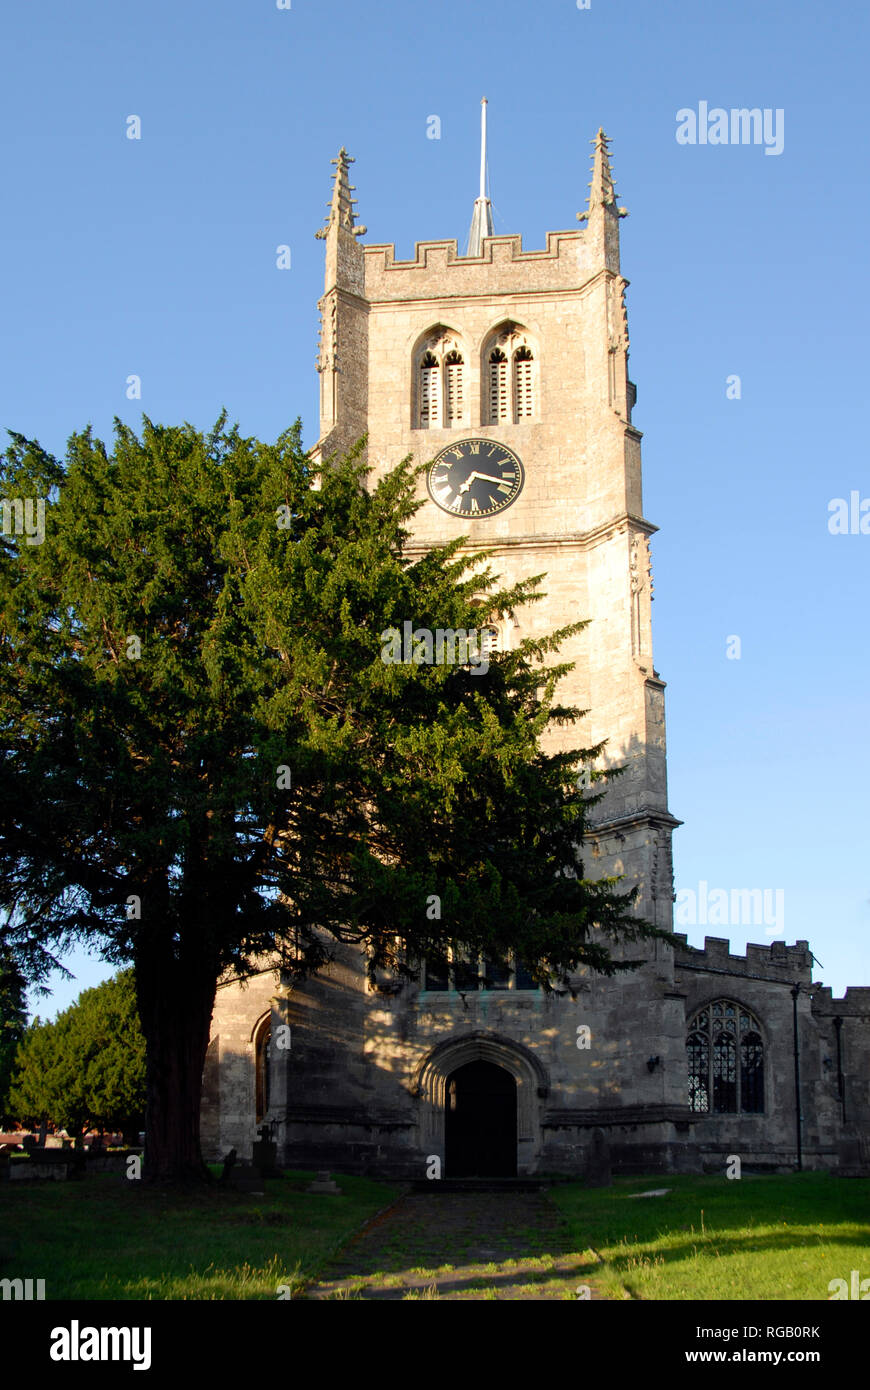 Church of St Mary, with tower, in the market town of Devizes, Wiltshire, England. - Stock Image